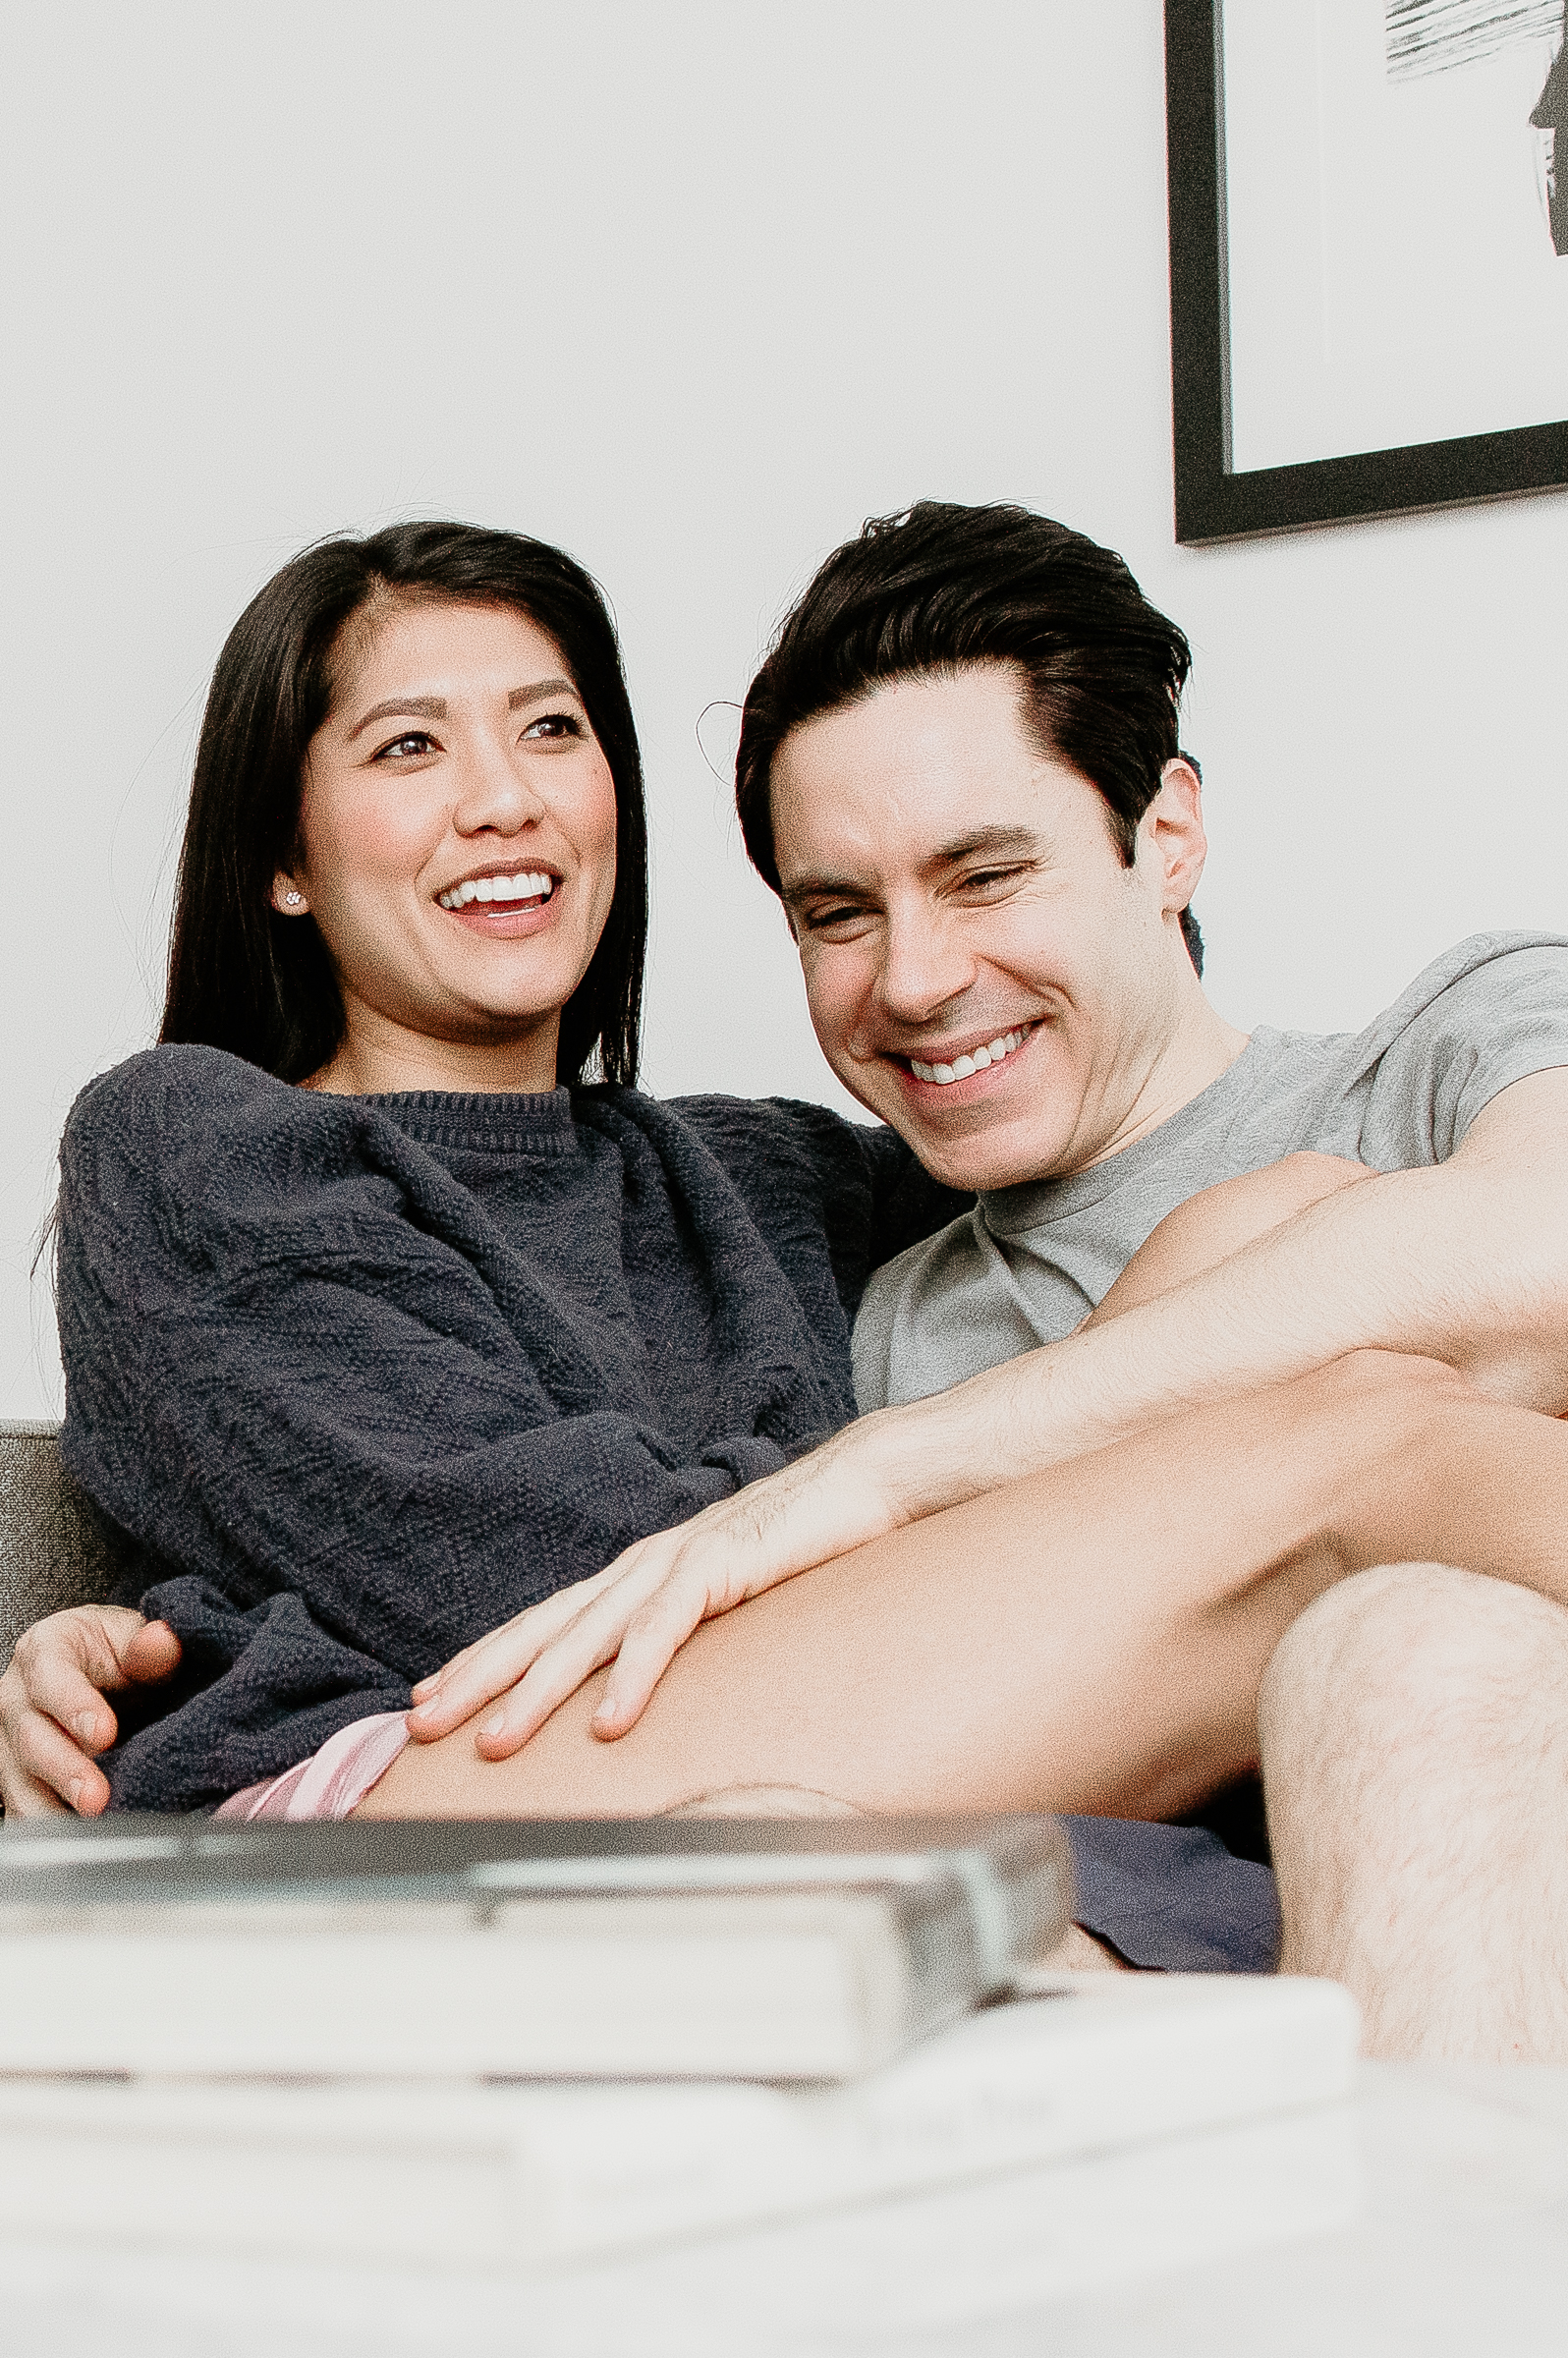 Couple snuggling on the couch together and laughing